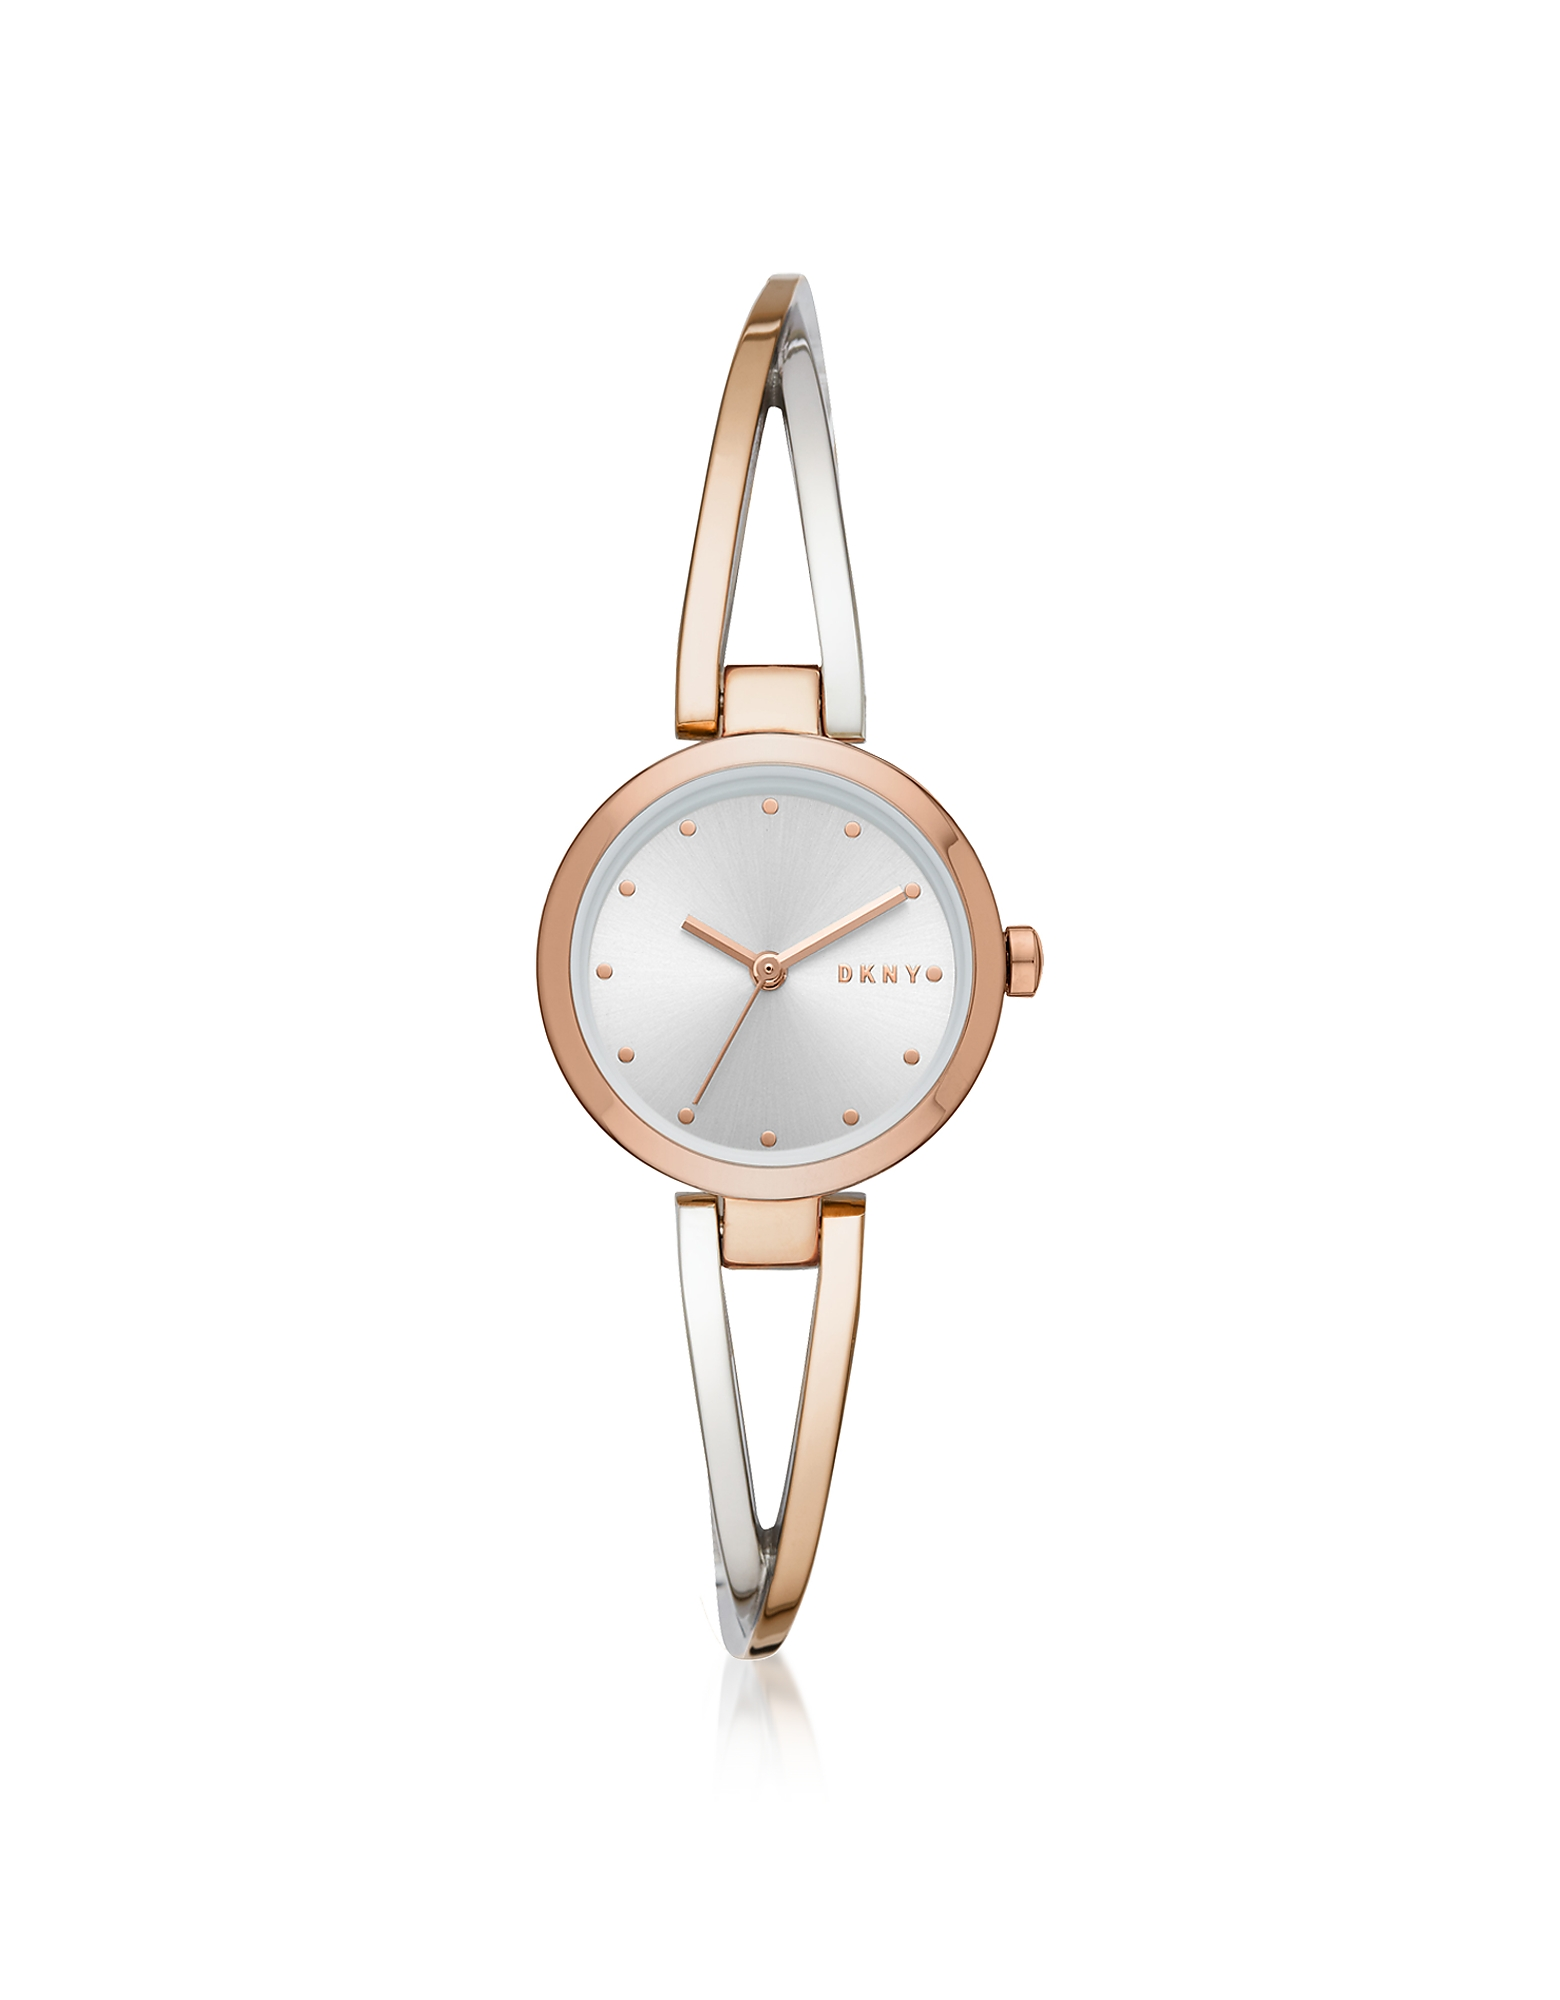 DKNY  Women's Watches Crosswalk Rose Gold/Stainless Steel Watch